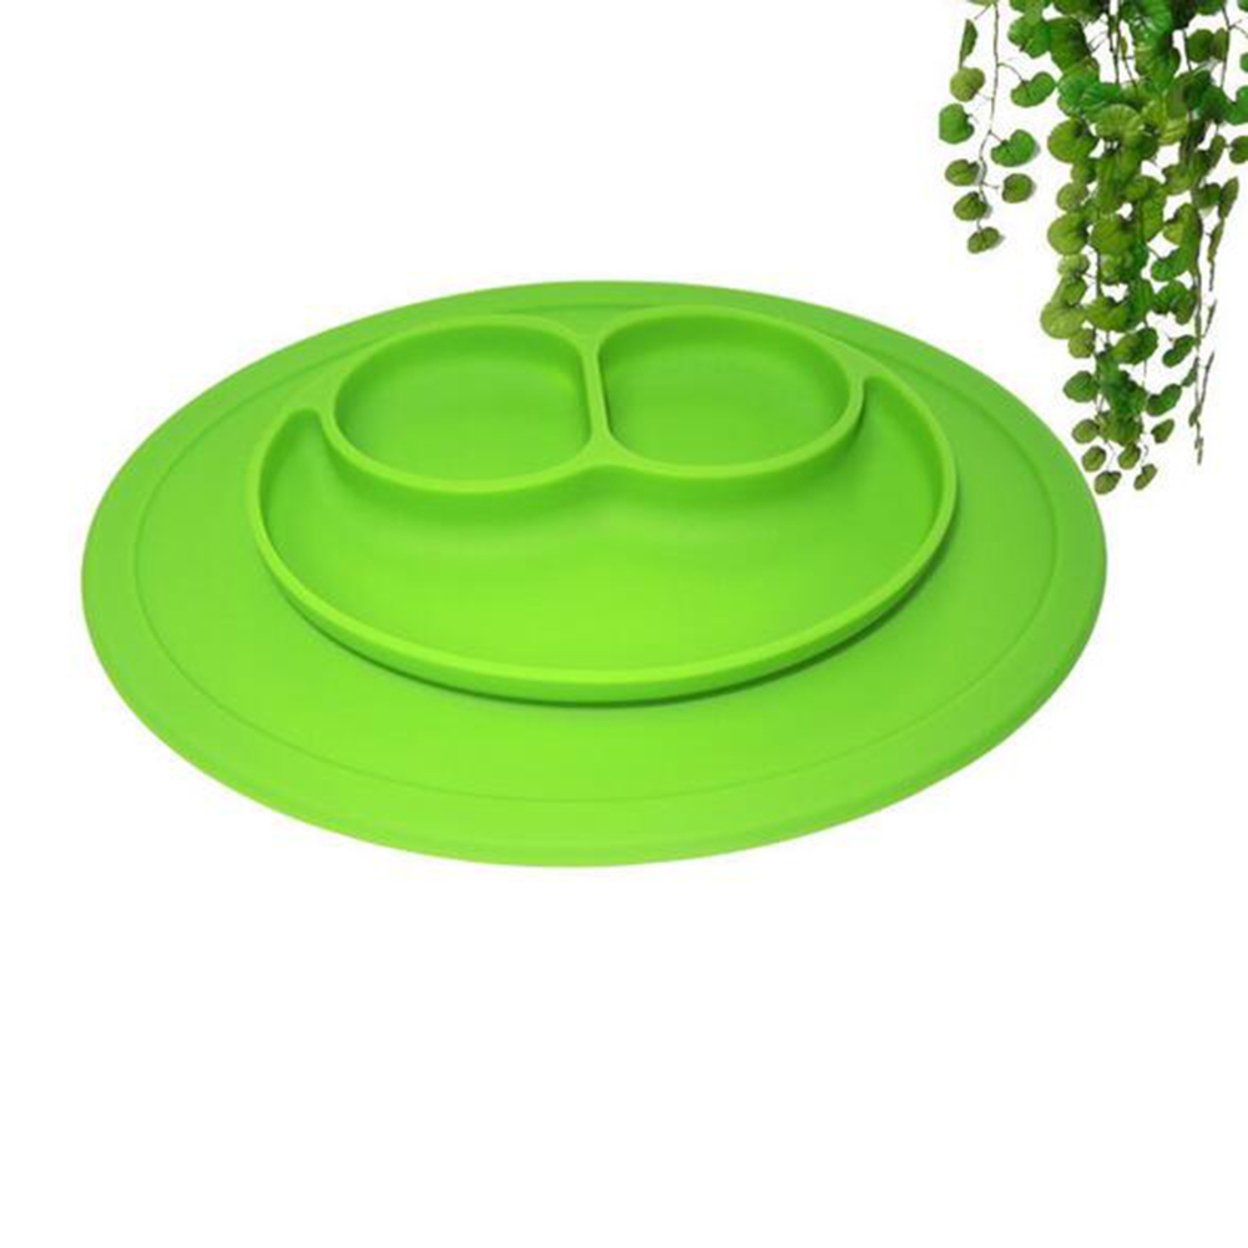 Kuke Lovely Silicone Kids Suction Table Food Tray Placemat Plate Bowl Happy Dish 59c4be3be2246139876c6b8a